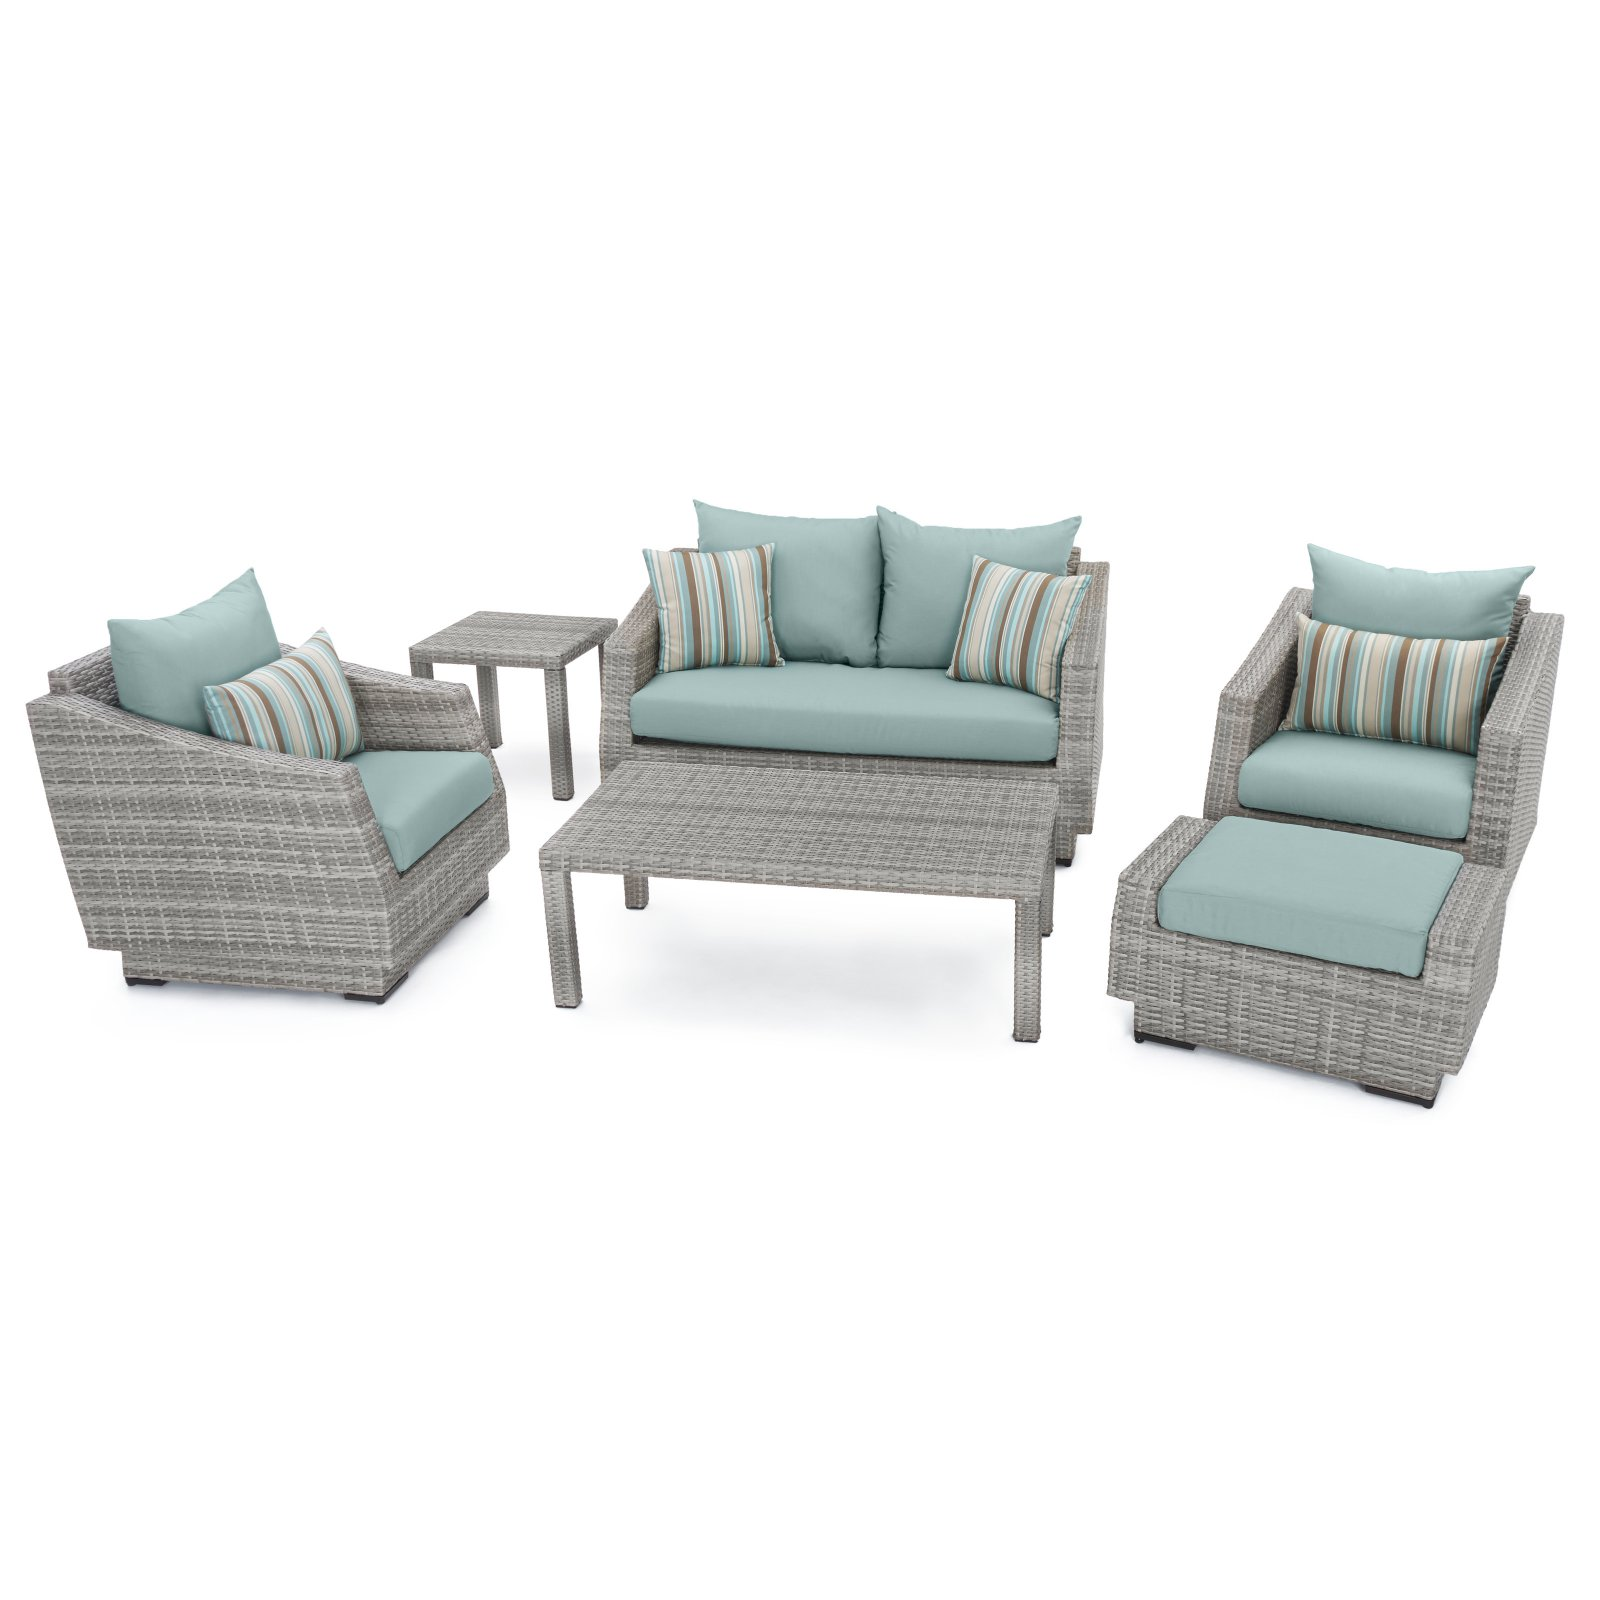 RST Brands Cannes 6 Piece Loveseat Conversation Set